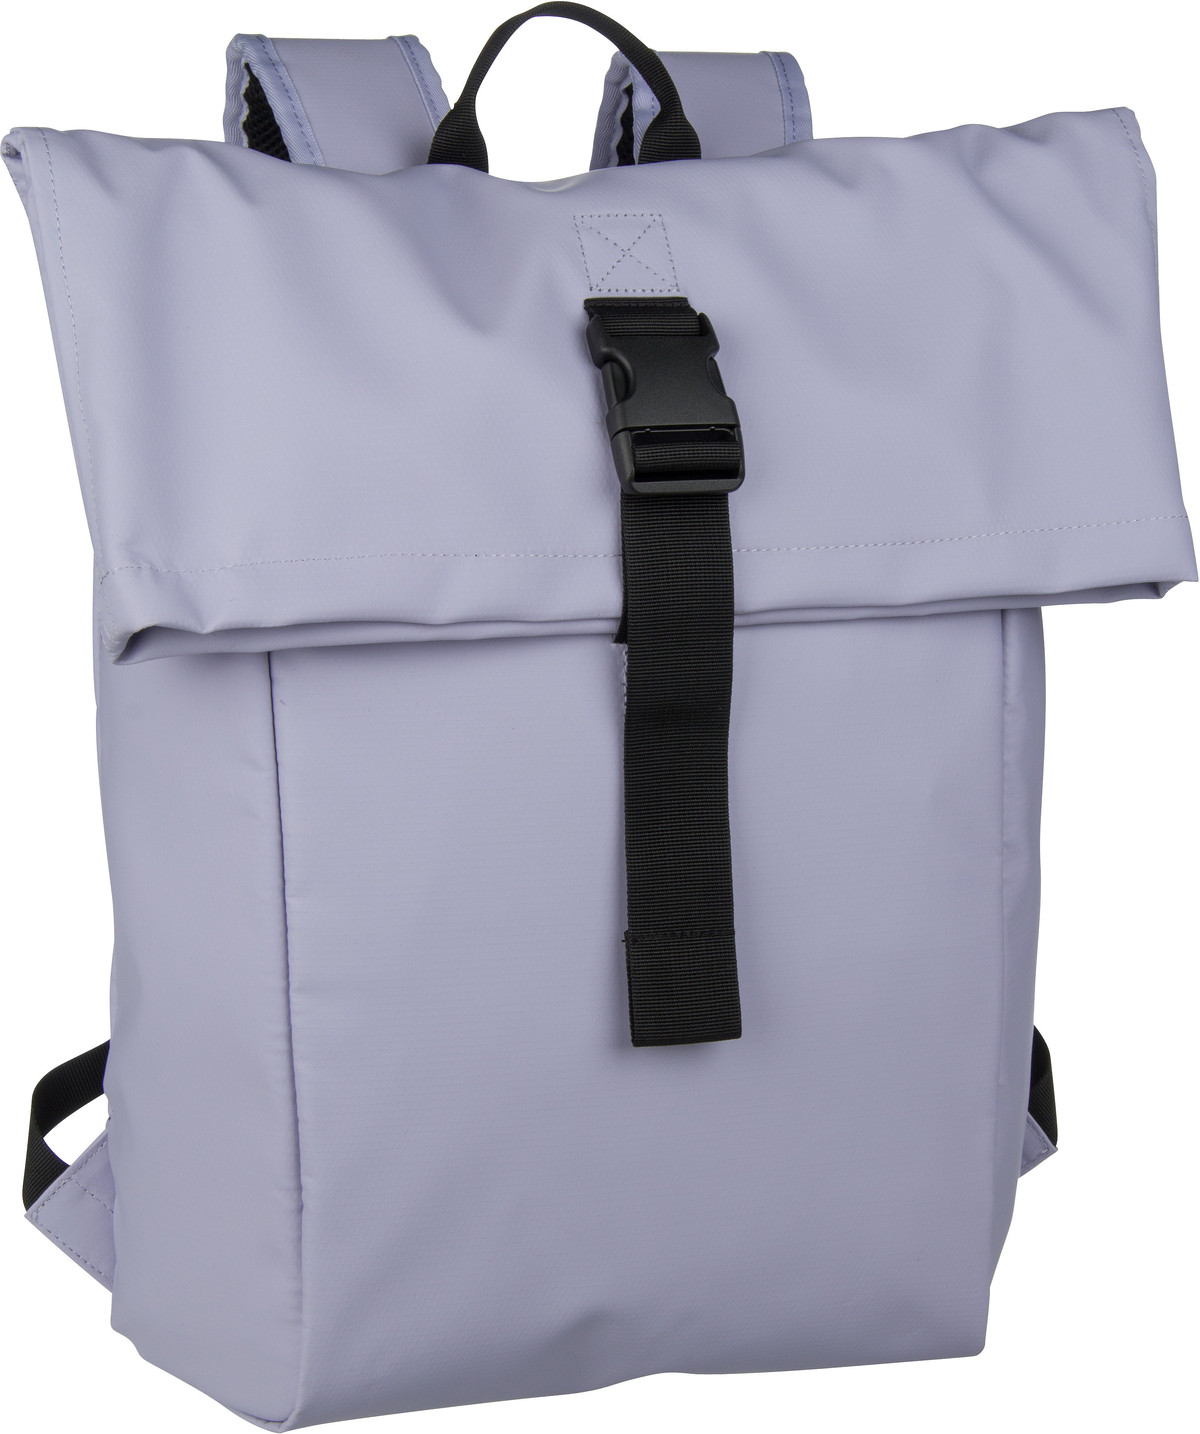 Rucksack / Daypack Punch 93 Backpack Lavender (23 Liter)